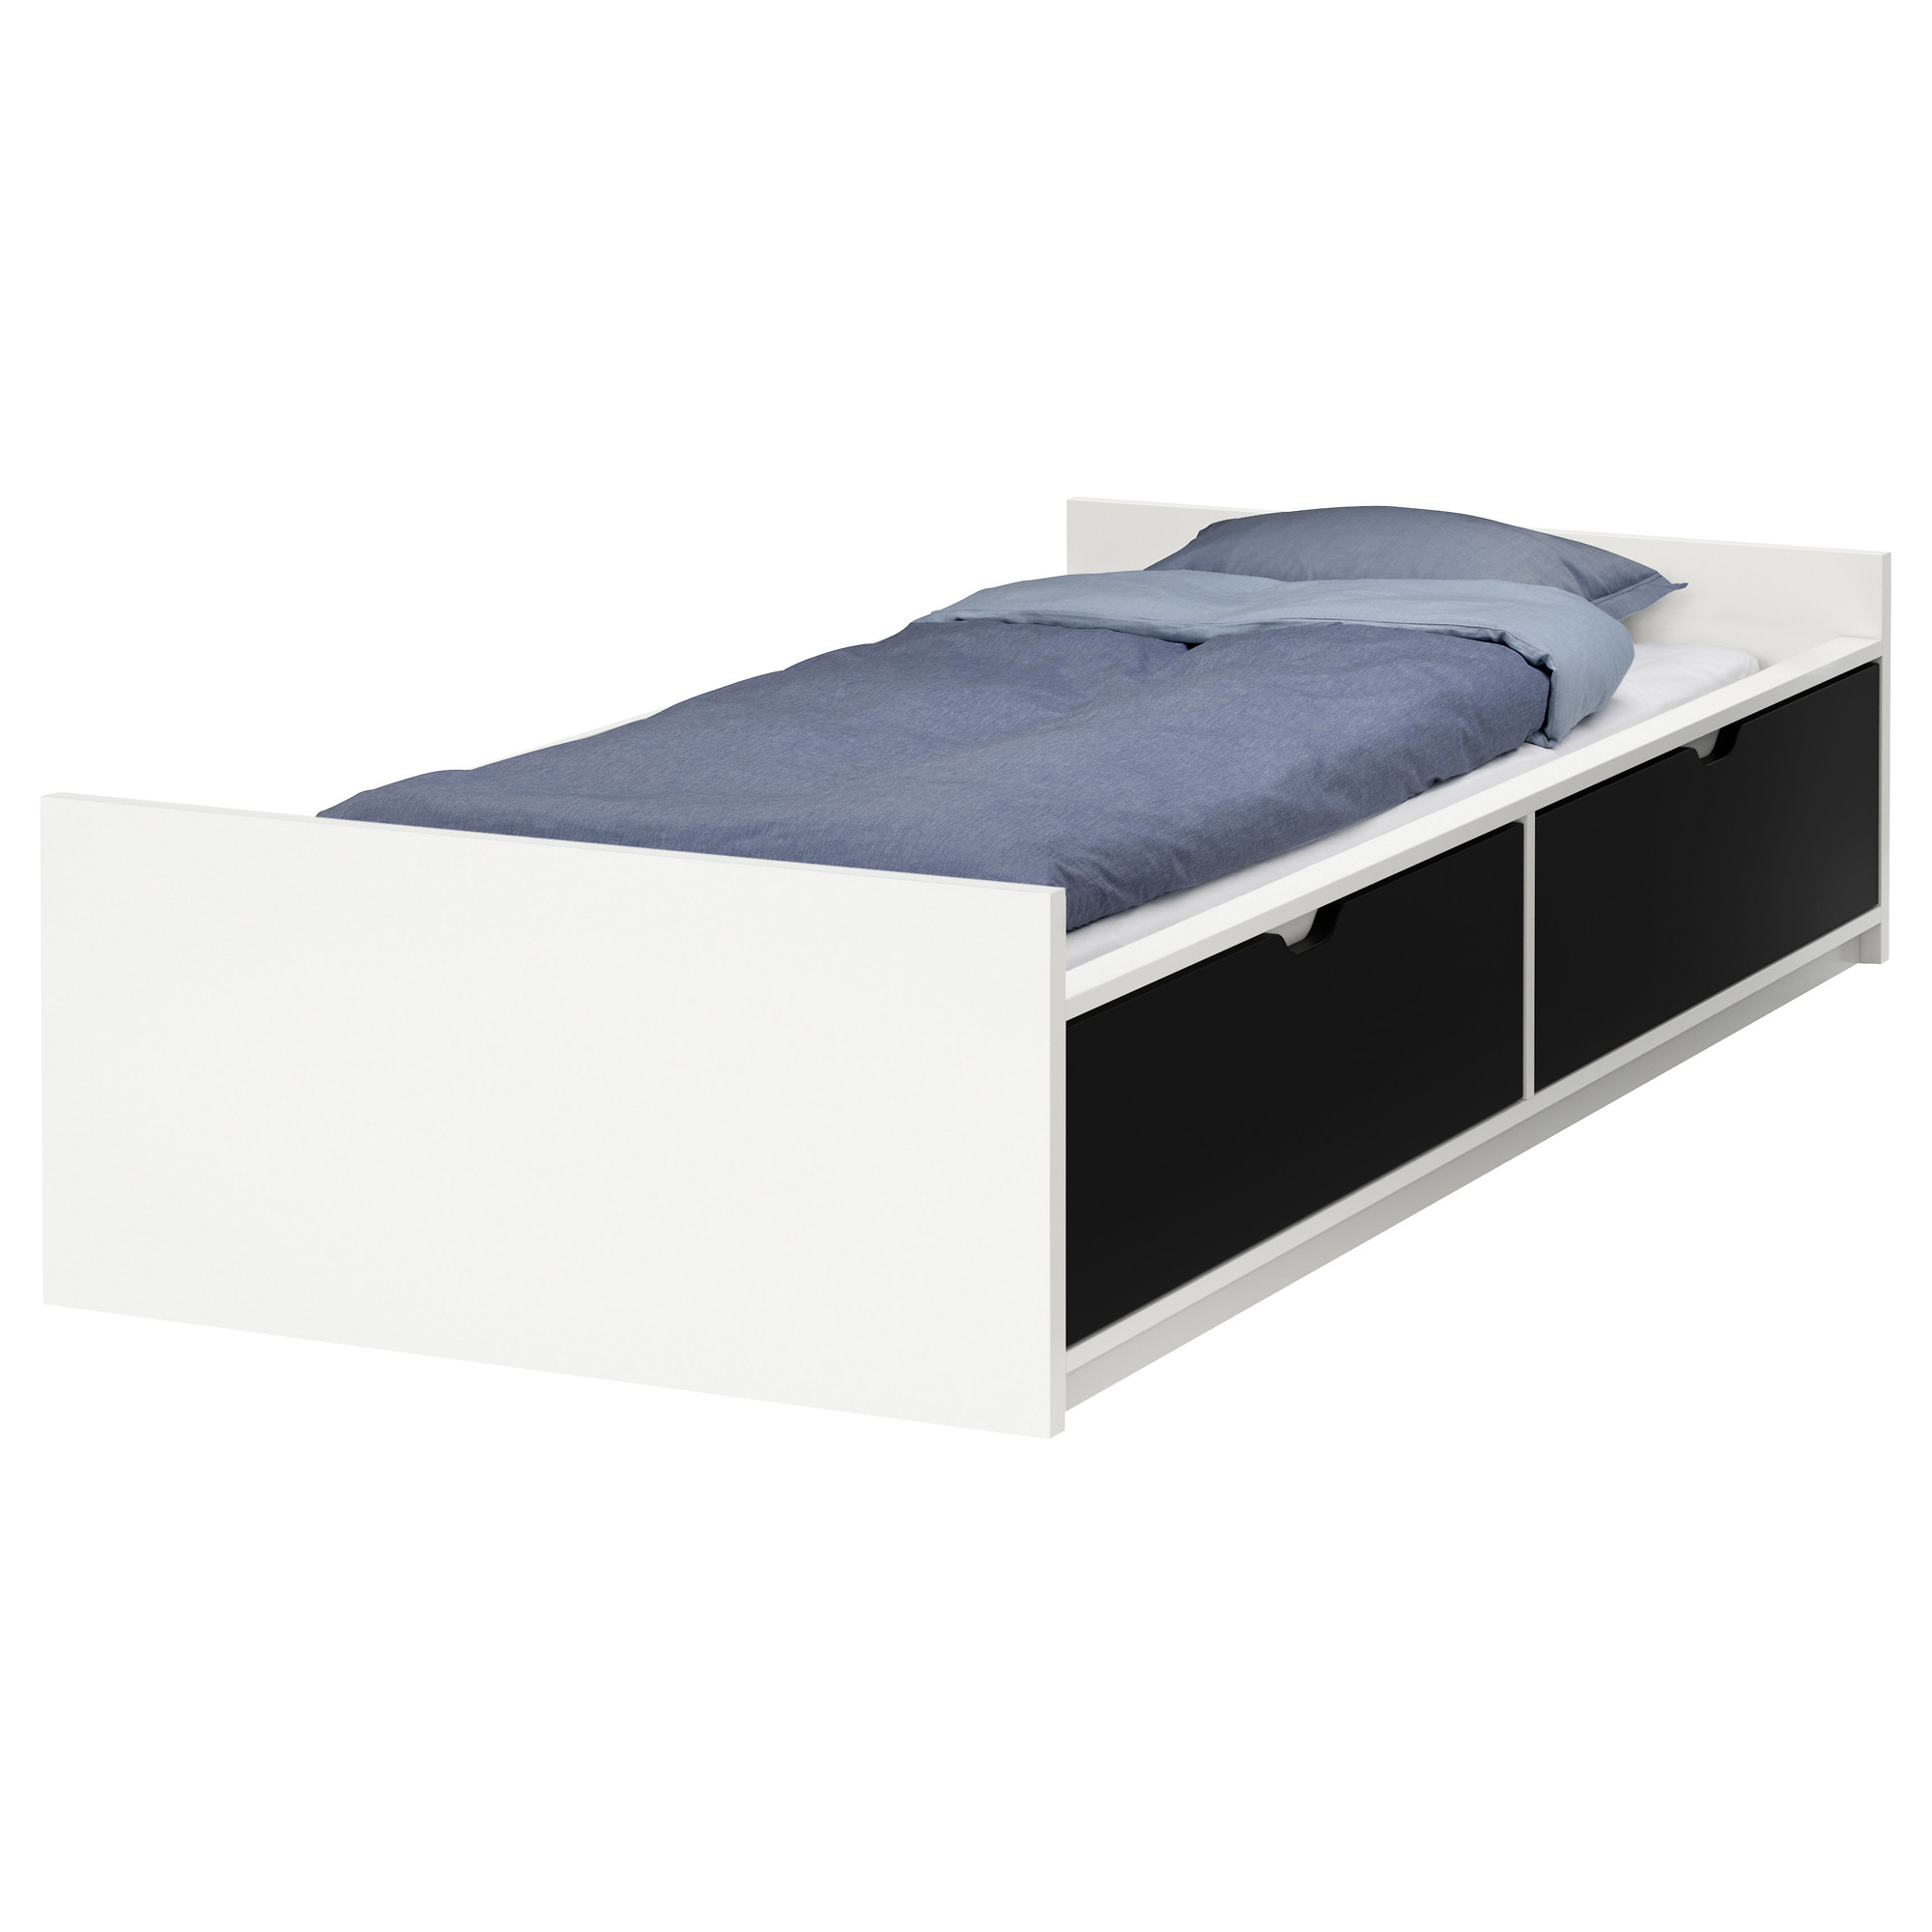 Captivating brimnes daybed for small bedroom ideas with ikea brimnes daybed